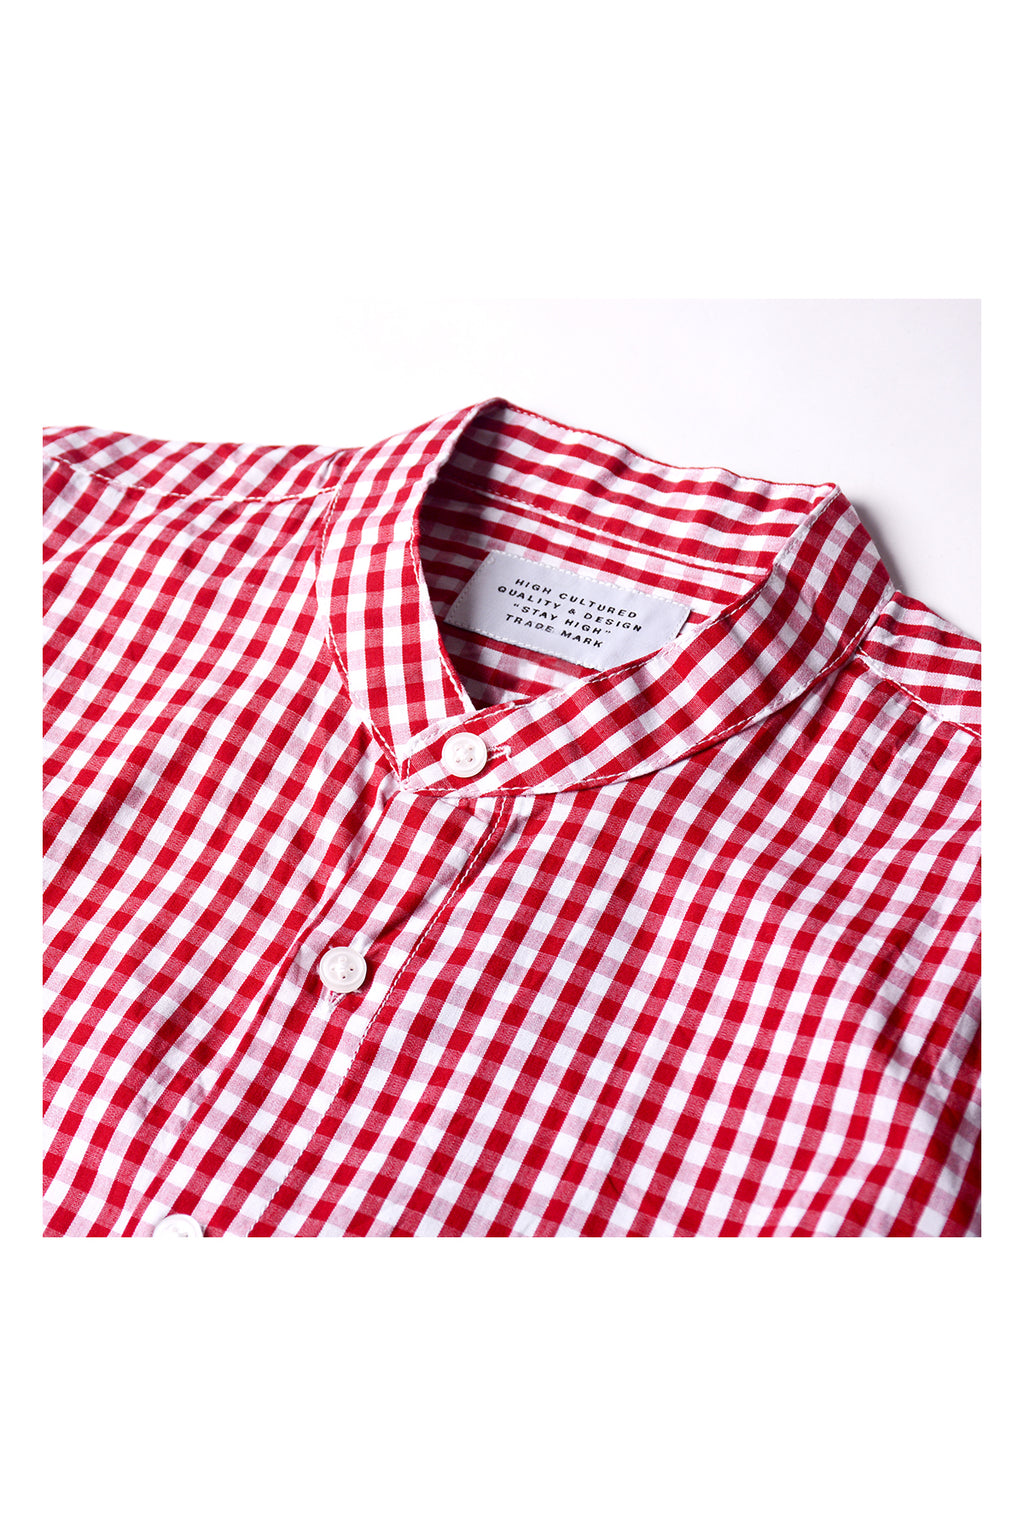 COLLARLESS SMALL CHECKERED SHIRT | RED - 262